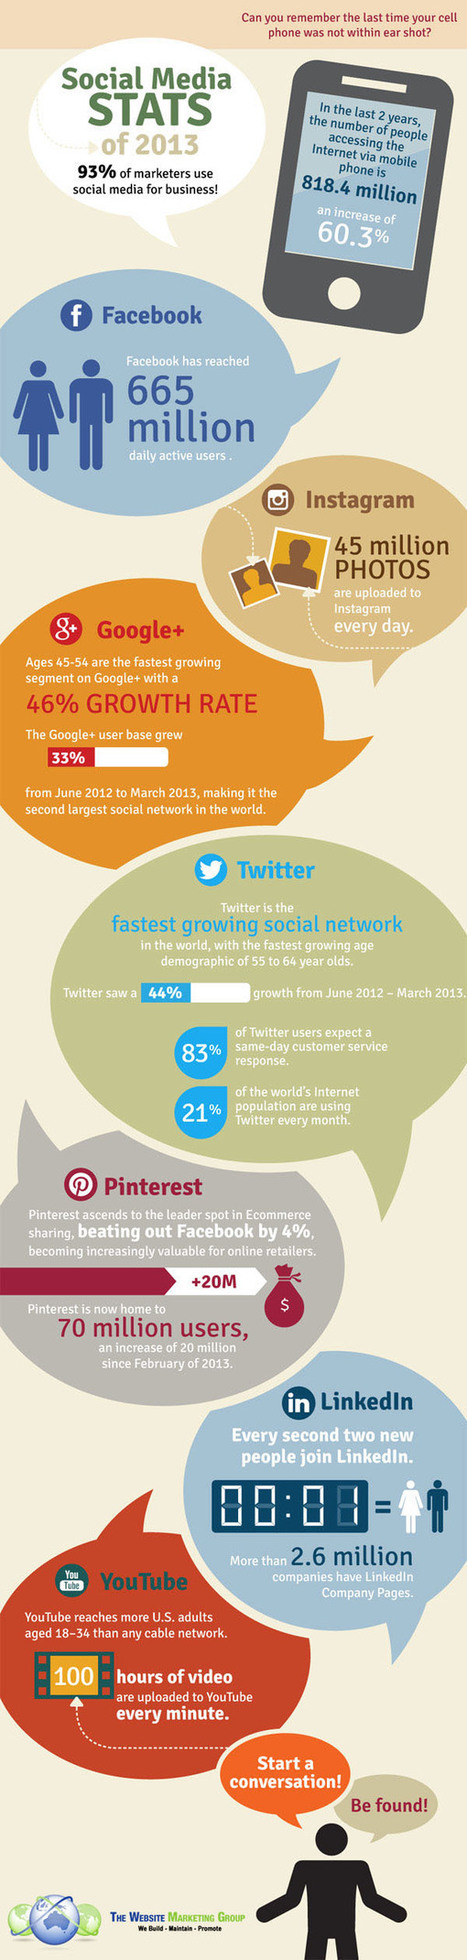 Social Media Infographic 2013 : Which platform is growing the fastest? | Personal Branding and Professional networks | Scoop.it